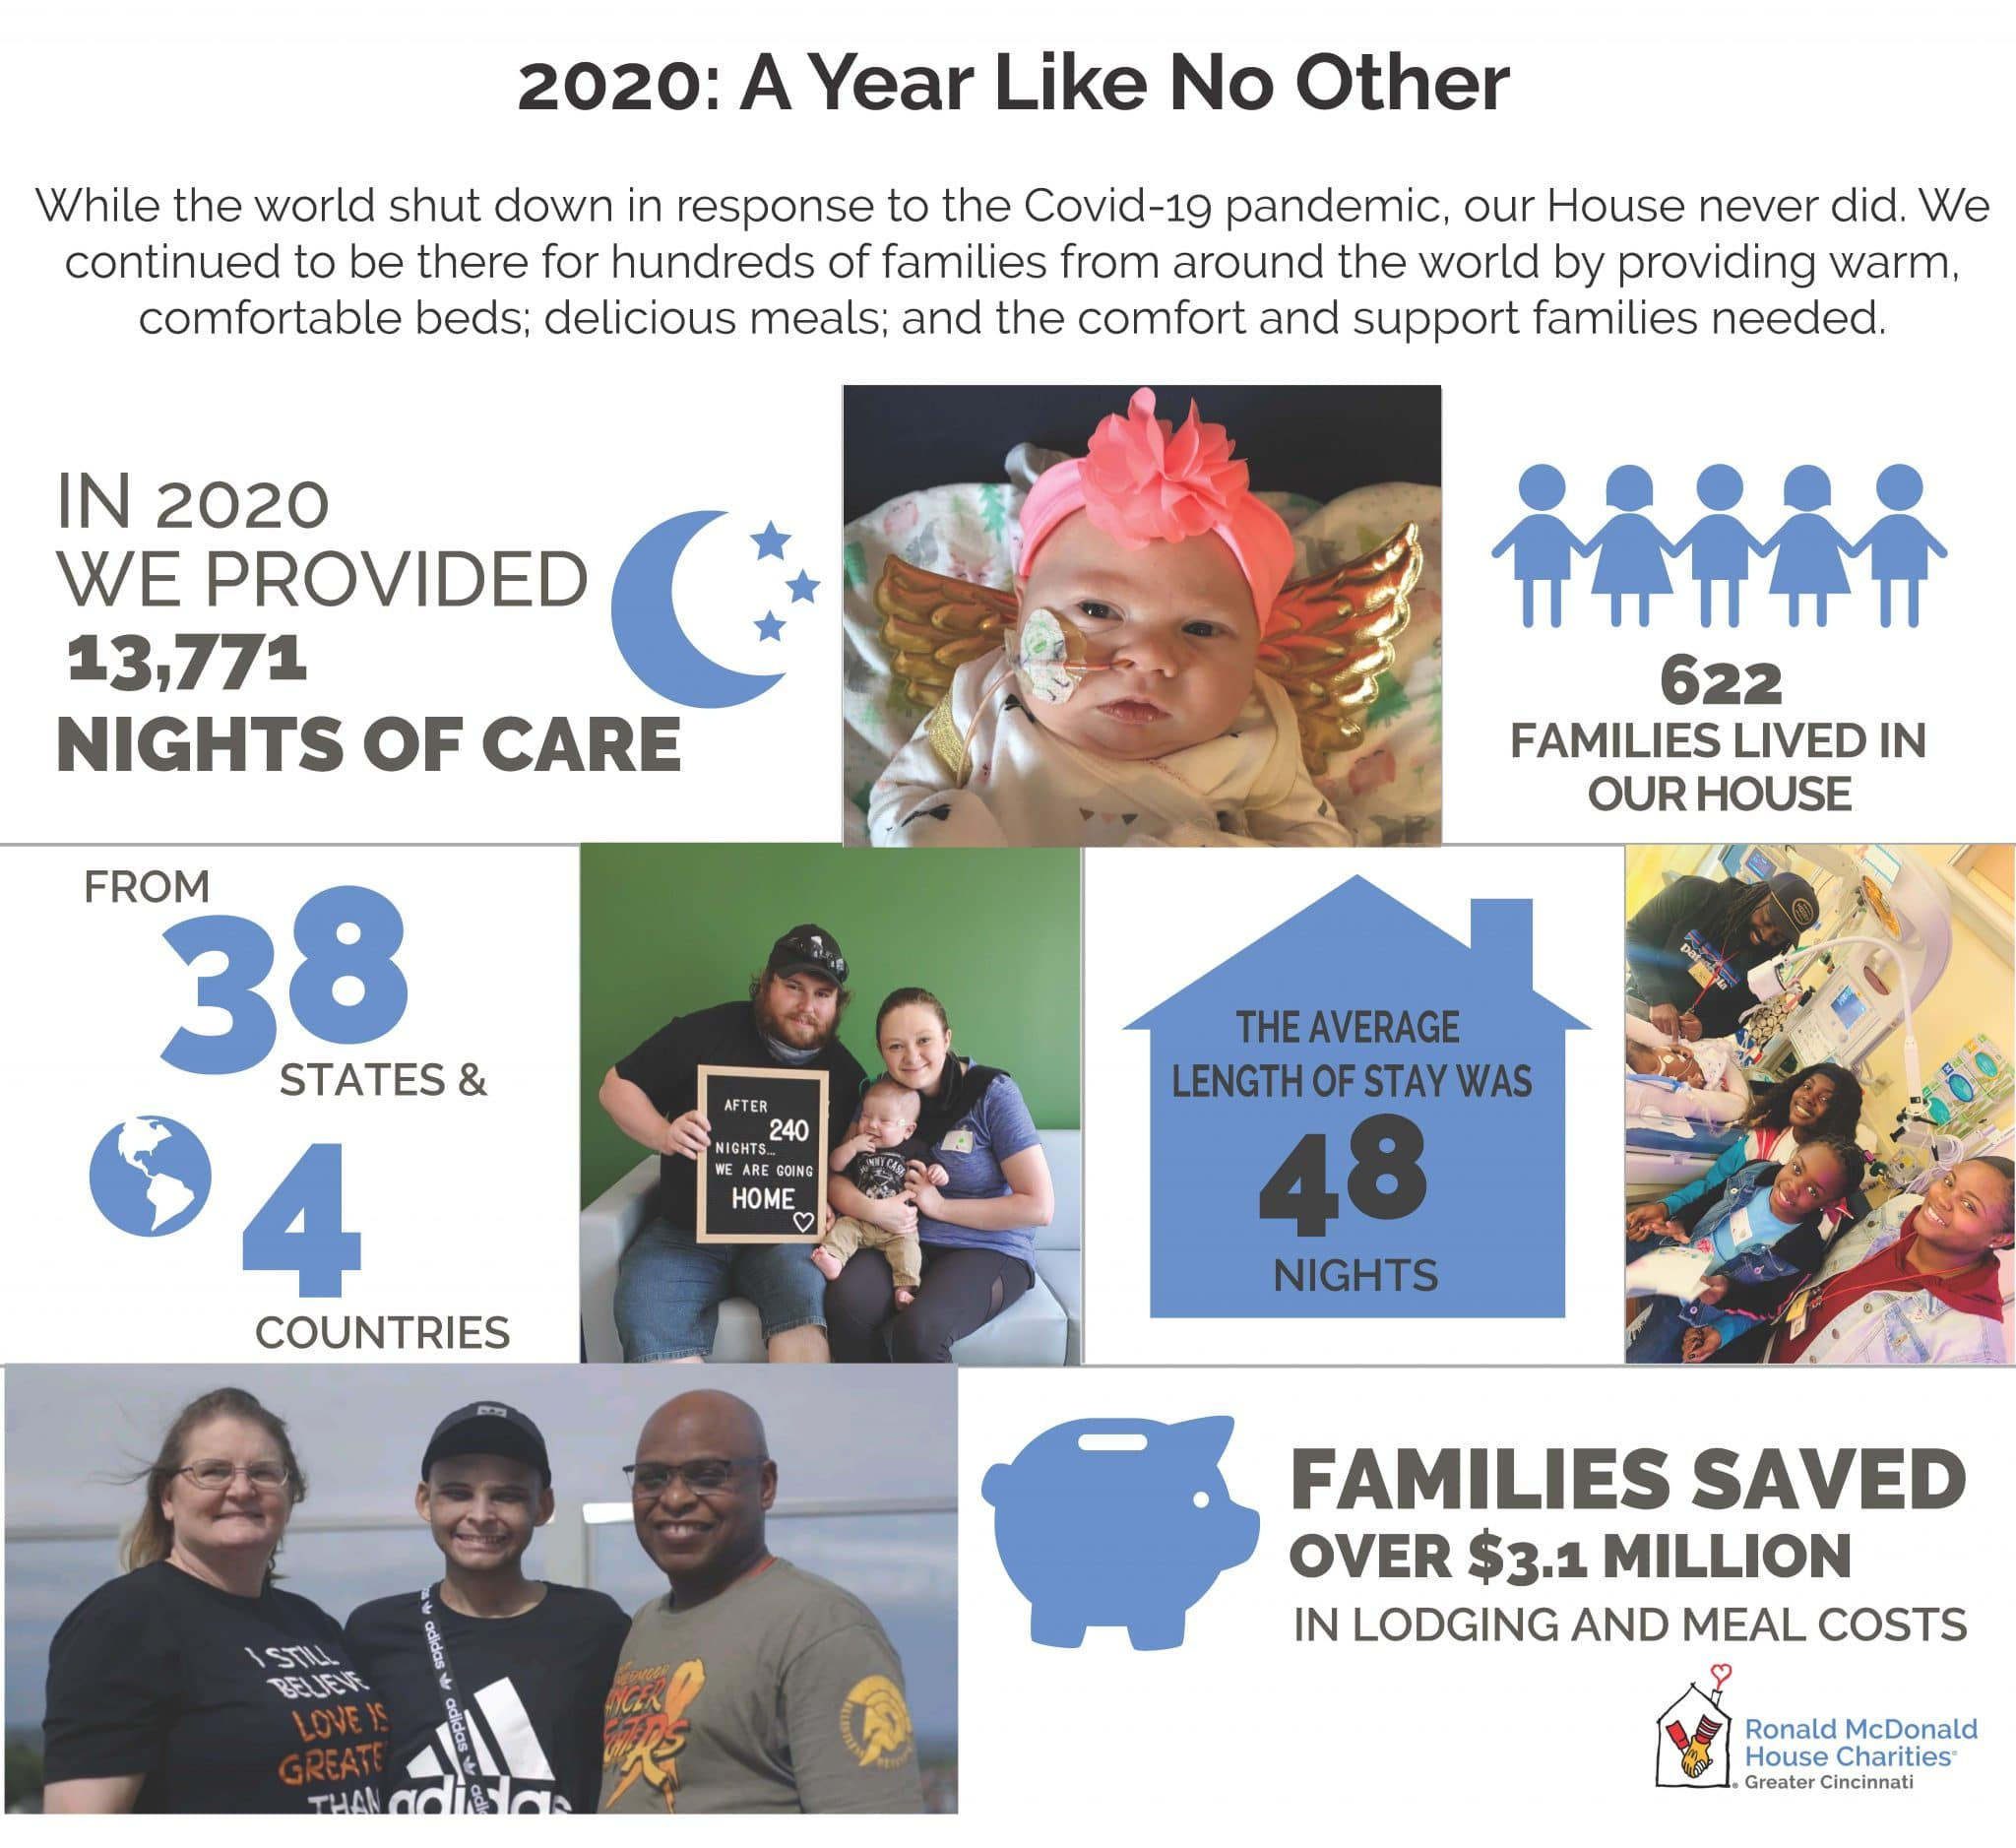 Image depicts statistics from 2020 for Cincinnati's Ronald McDonald House